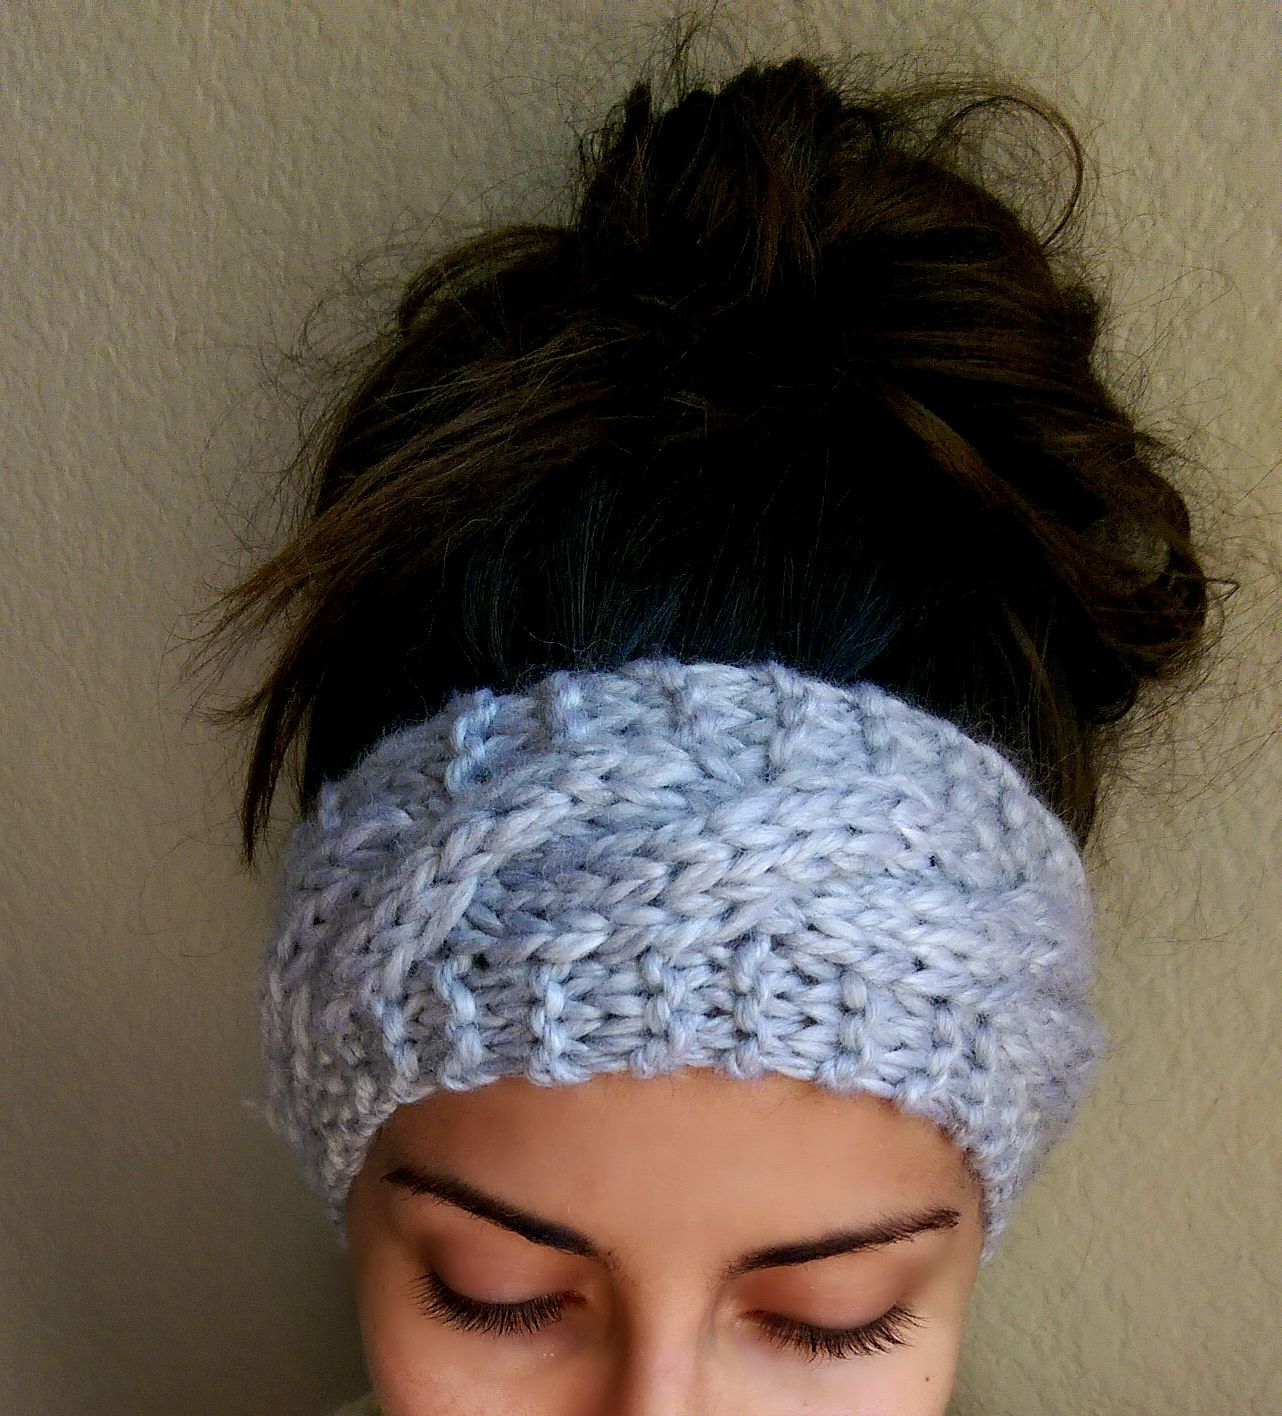 Cable Knit Headband | Knitting | Pinterest | Knitted headband, Cable ...